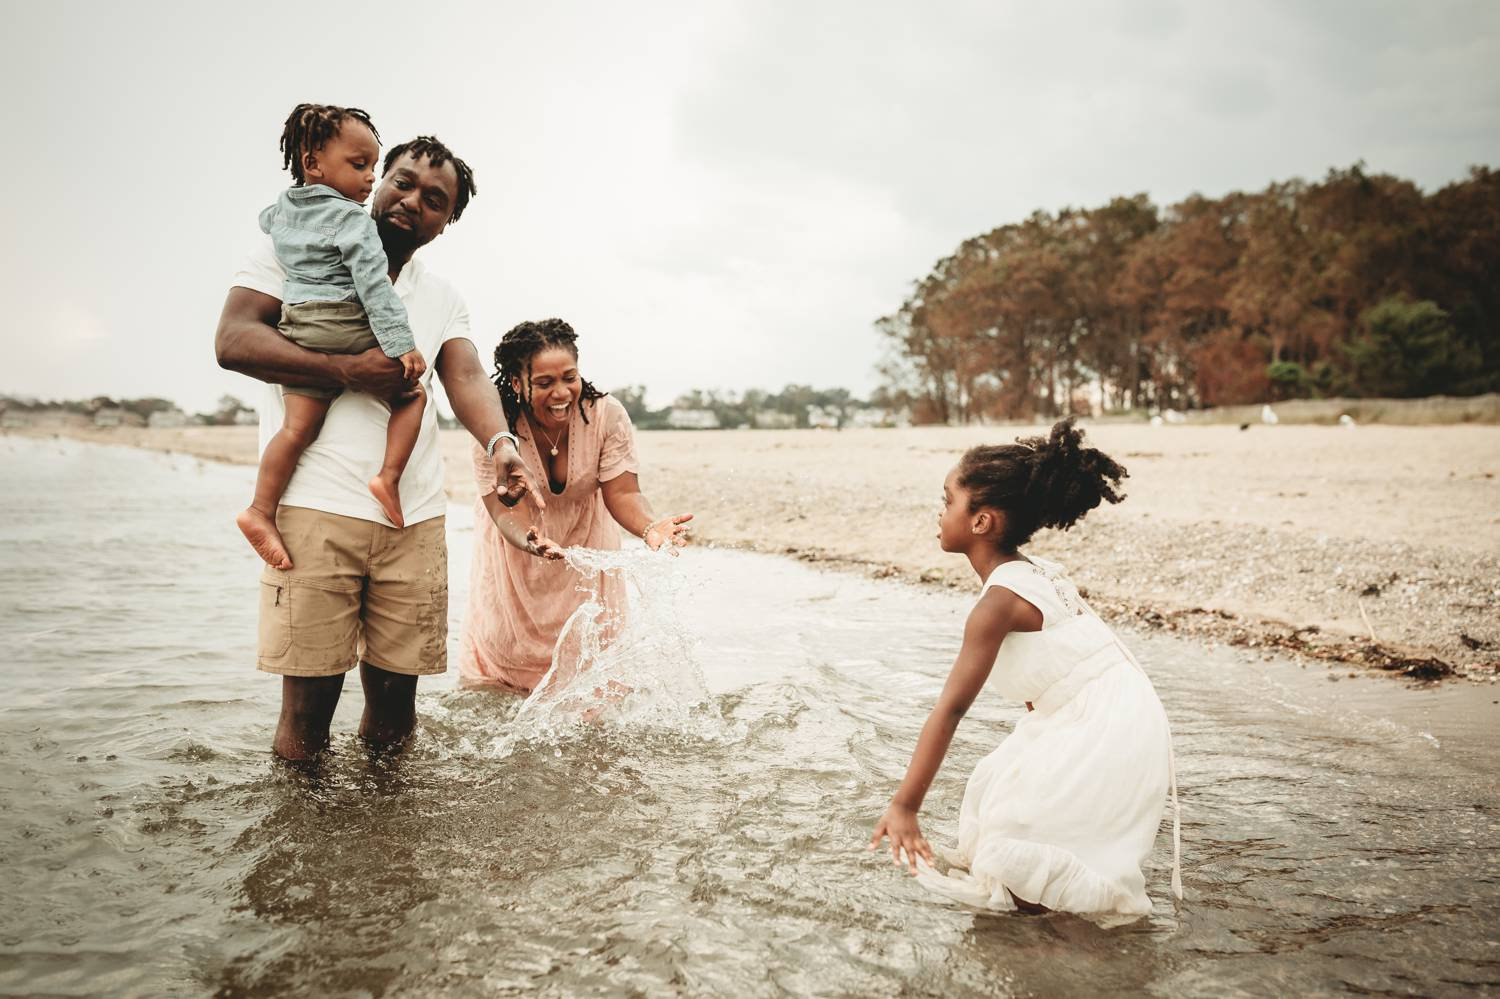 A family plays in the shallow bay waters